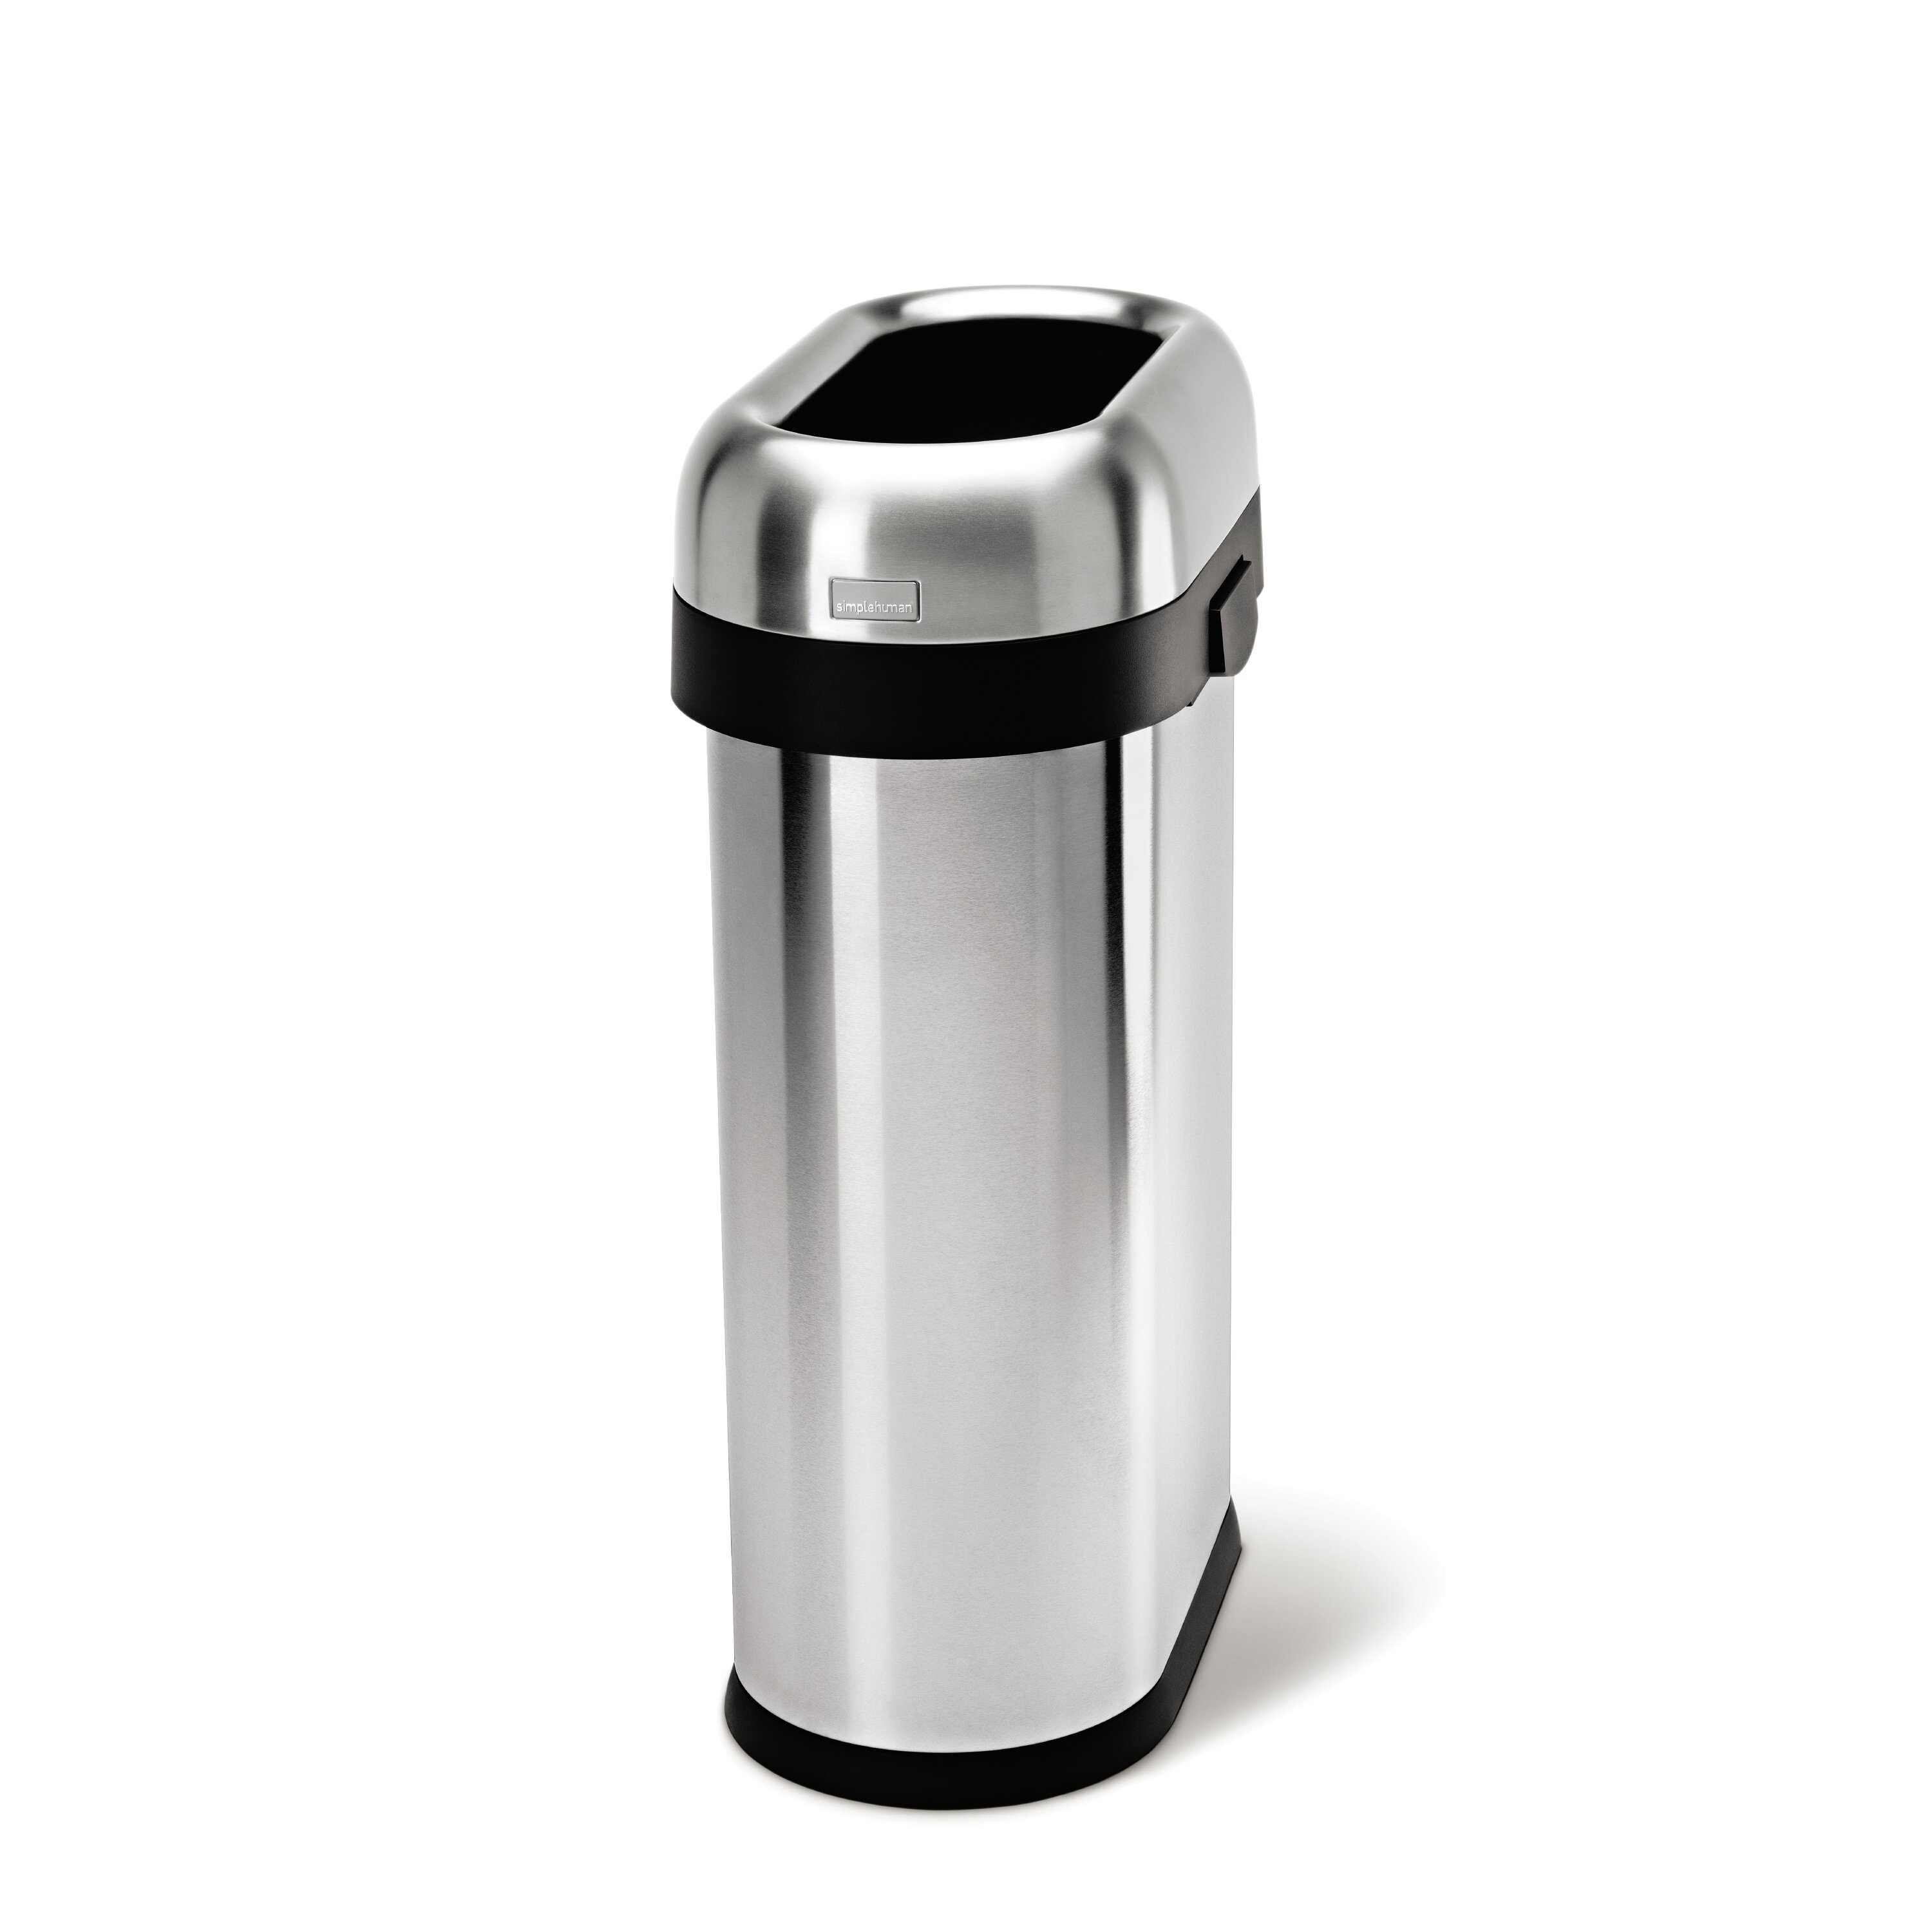 Retro Trash Cans Kitchen Trash Cans Youll Love Wayfair